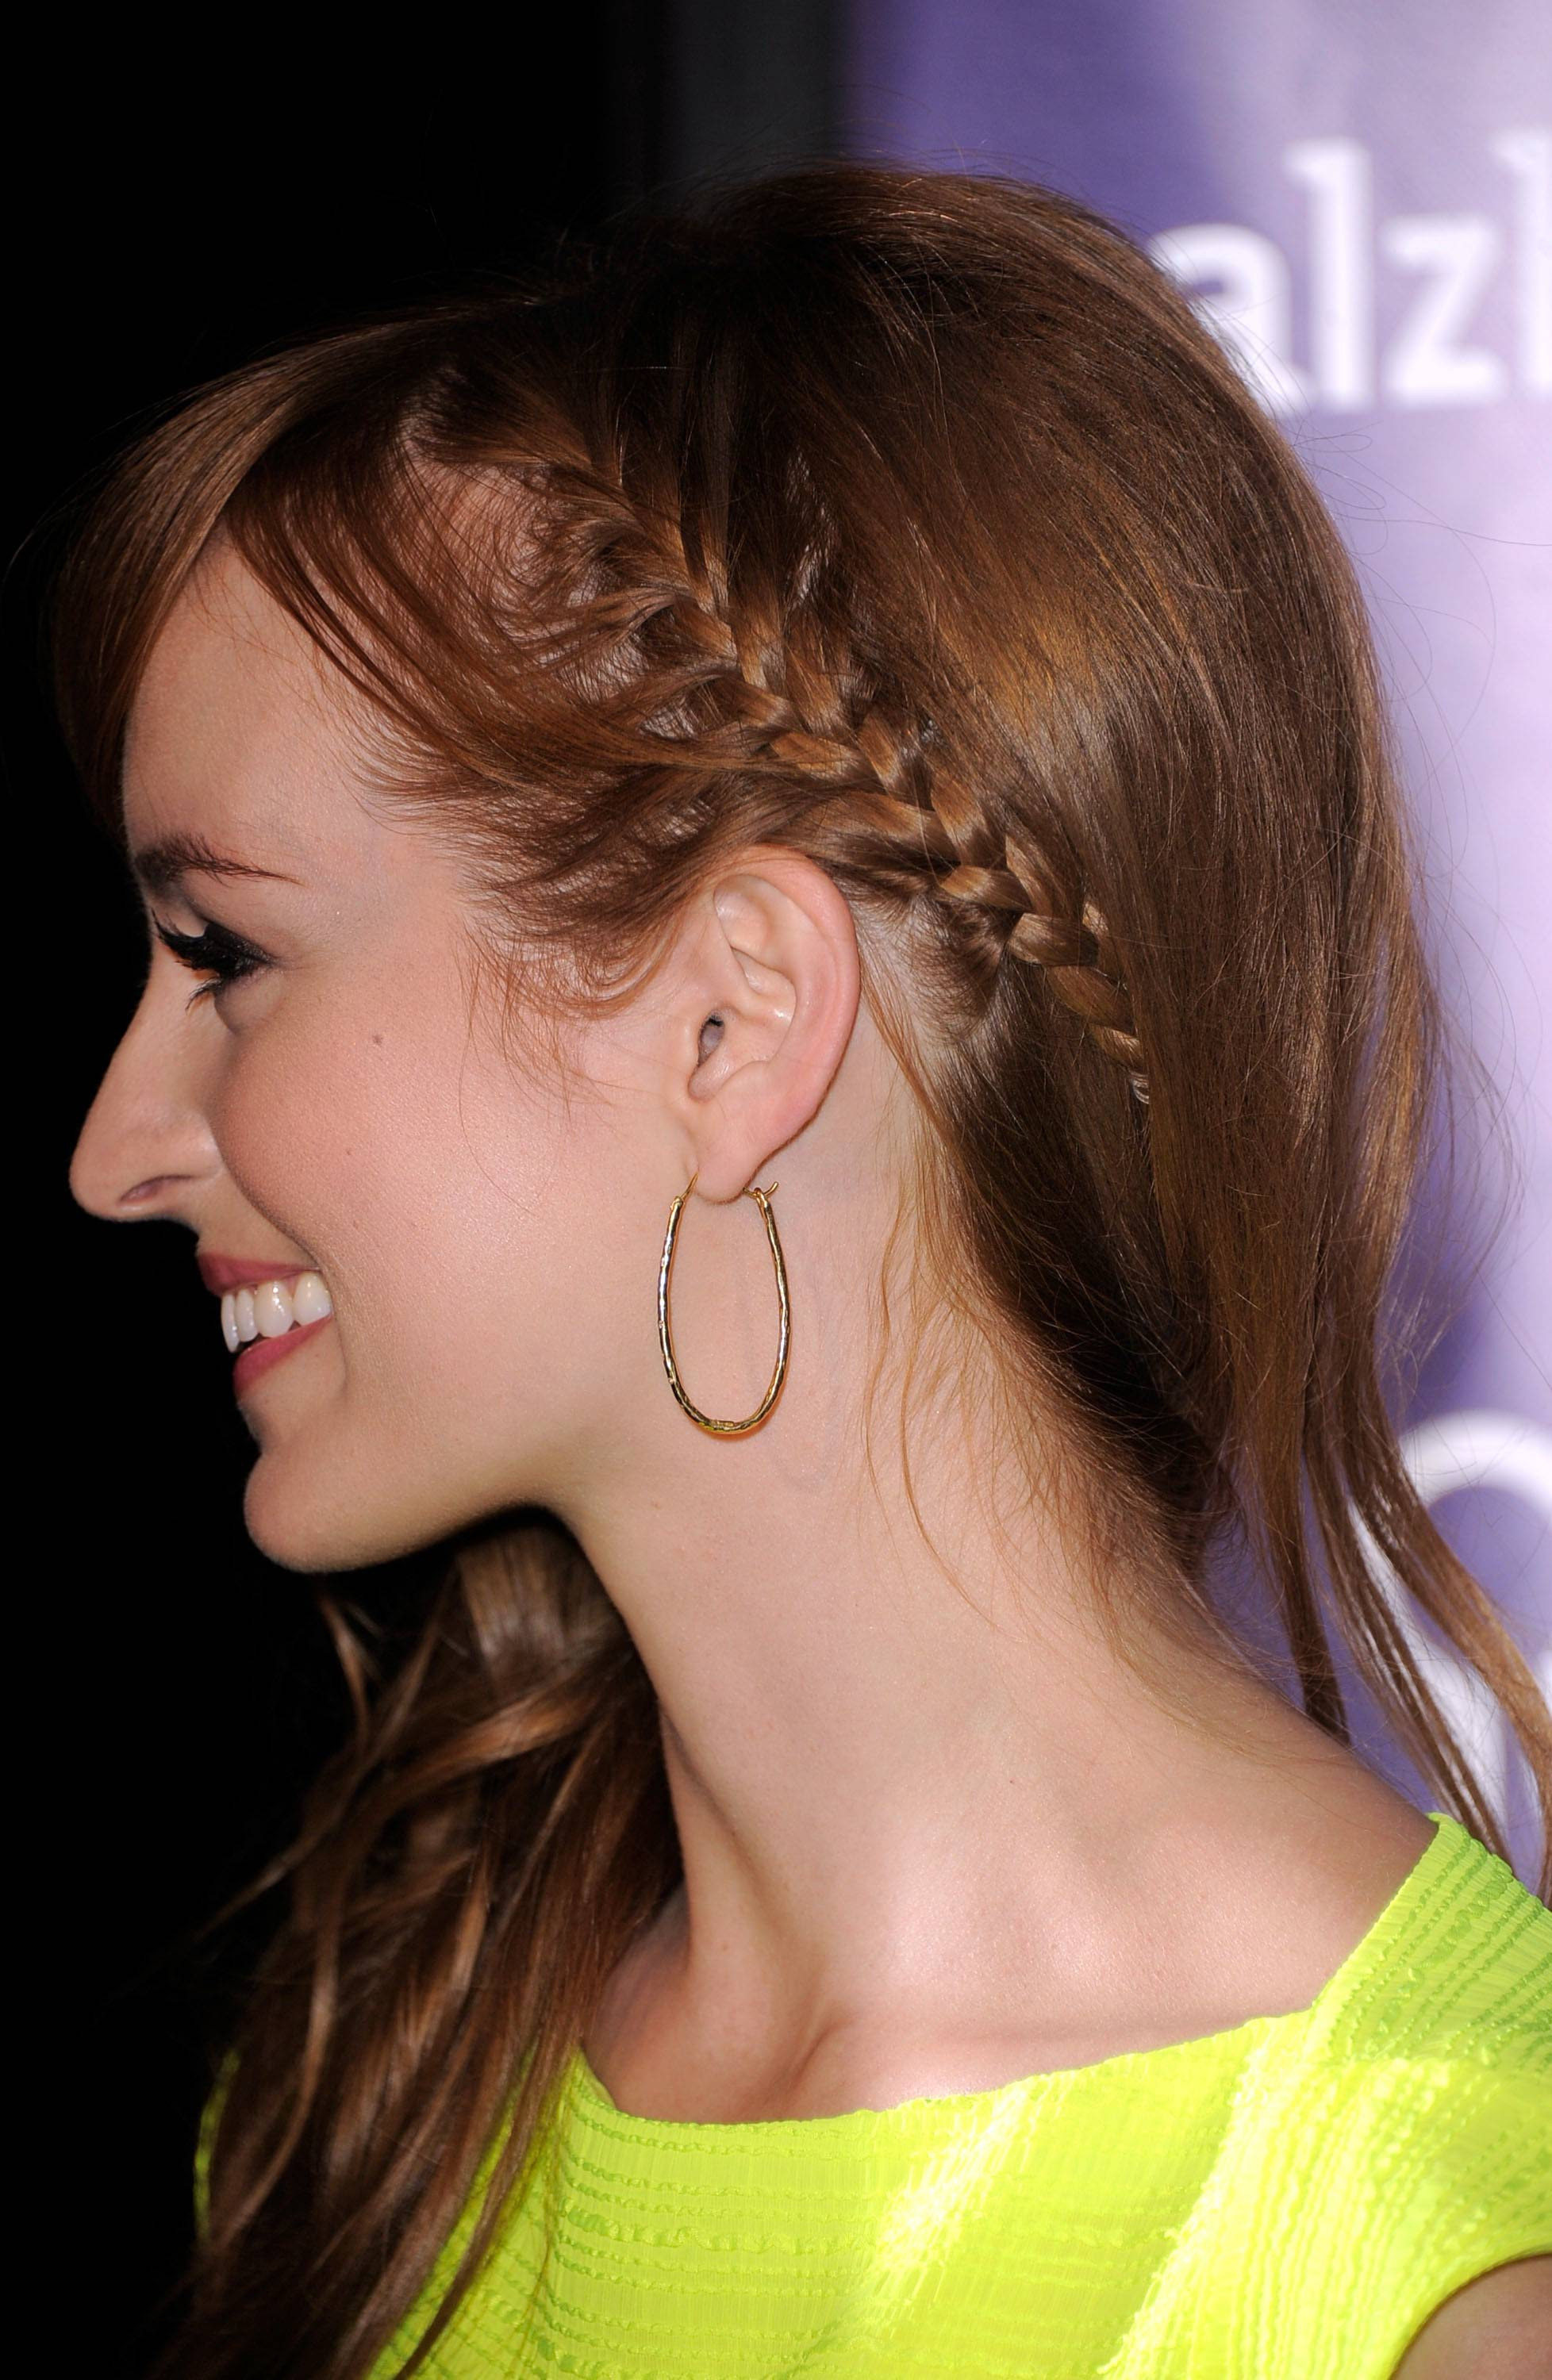 Best ideas about Pictures Of Cute Hairstyles . Save or Pin 30 Cute Braided Hairstyles Style Arena Now.